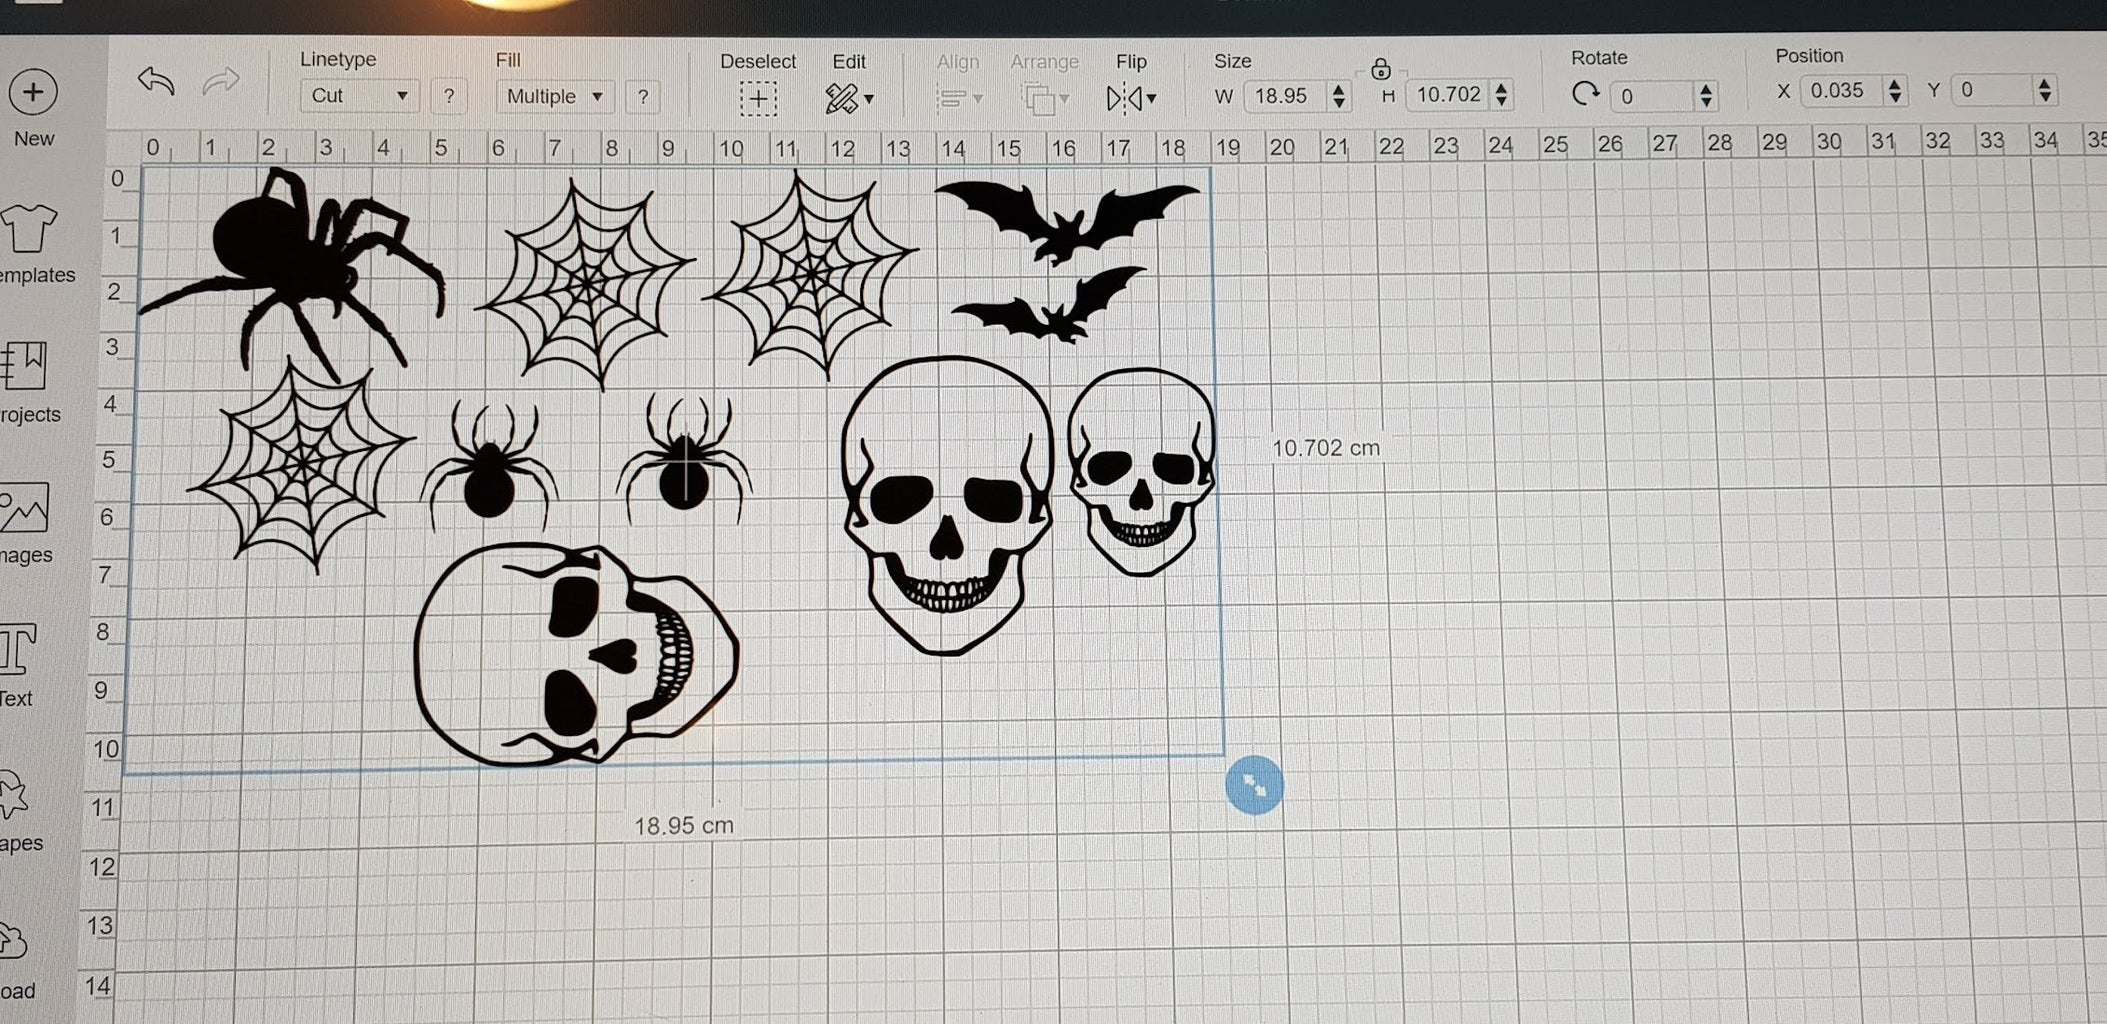 Making Your Images on a Cricut Machine